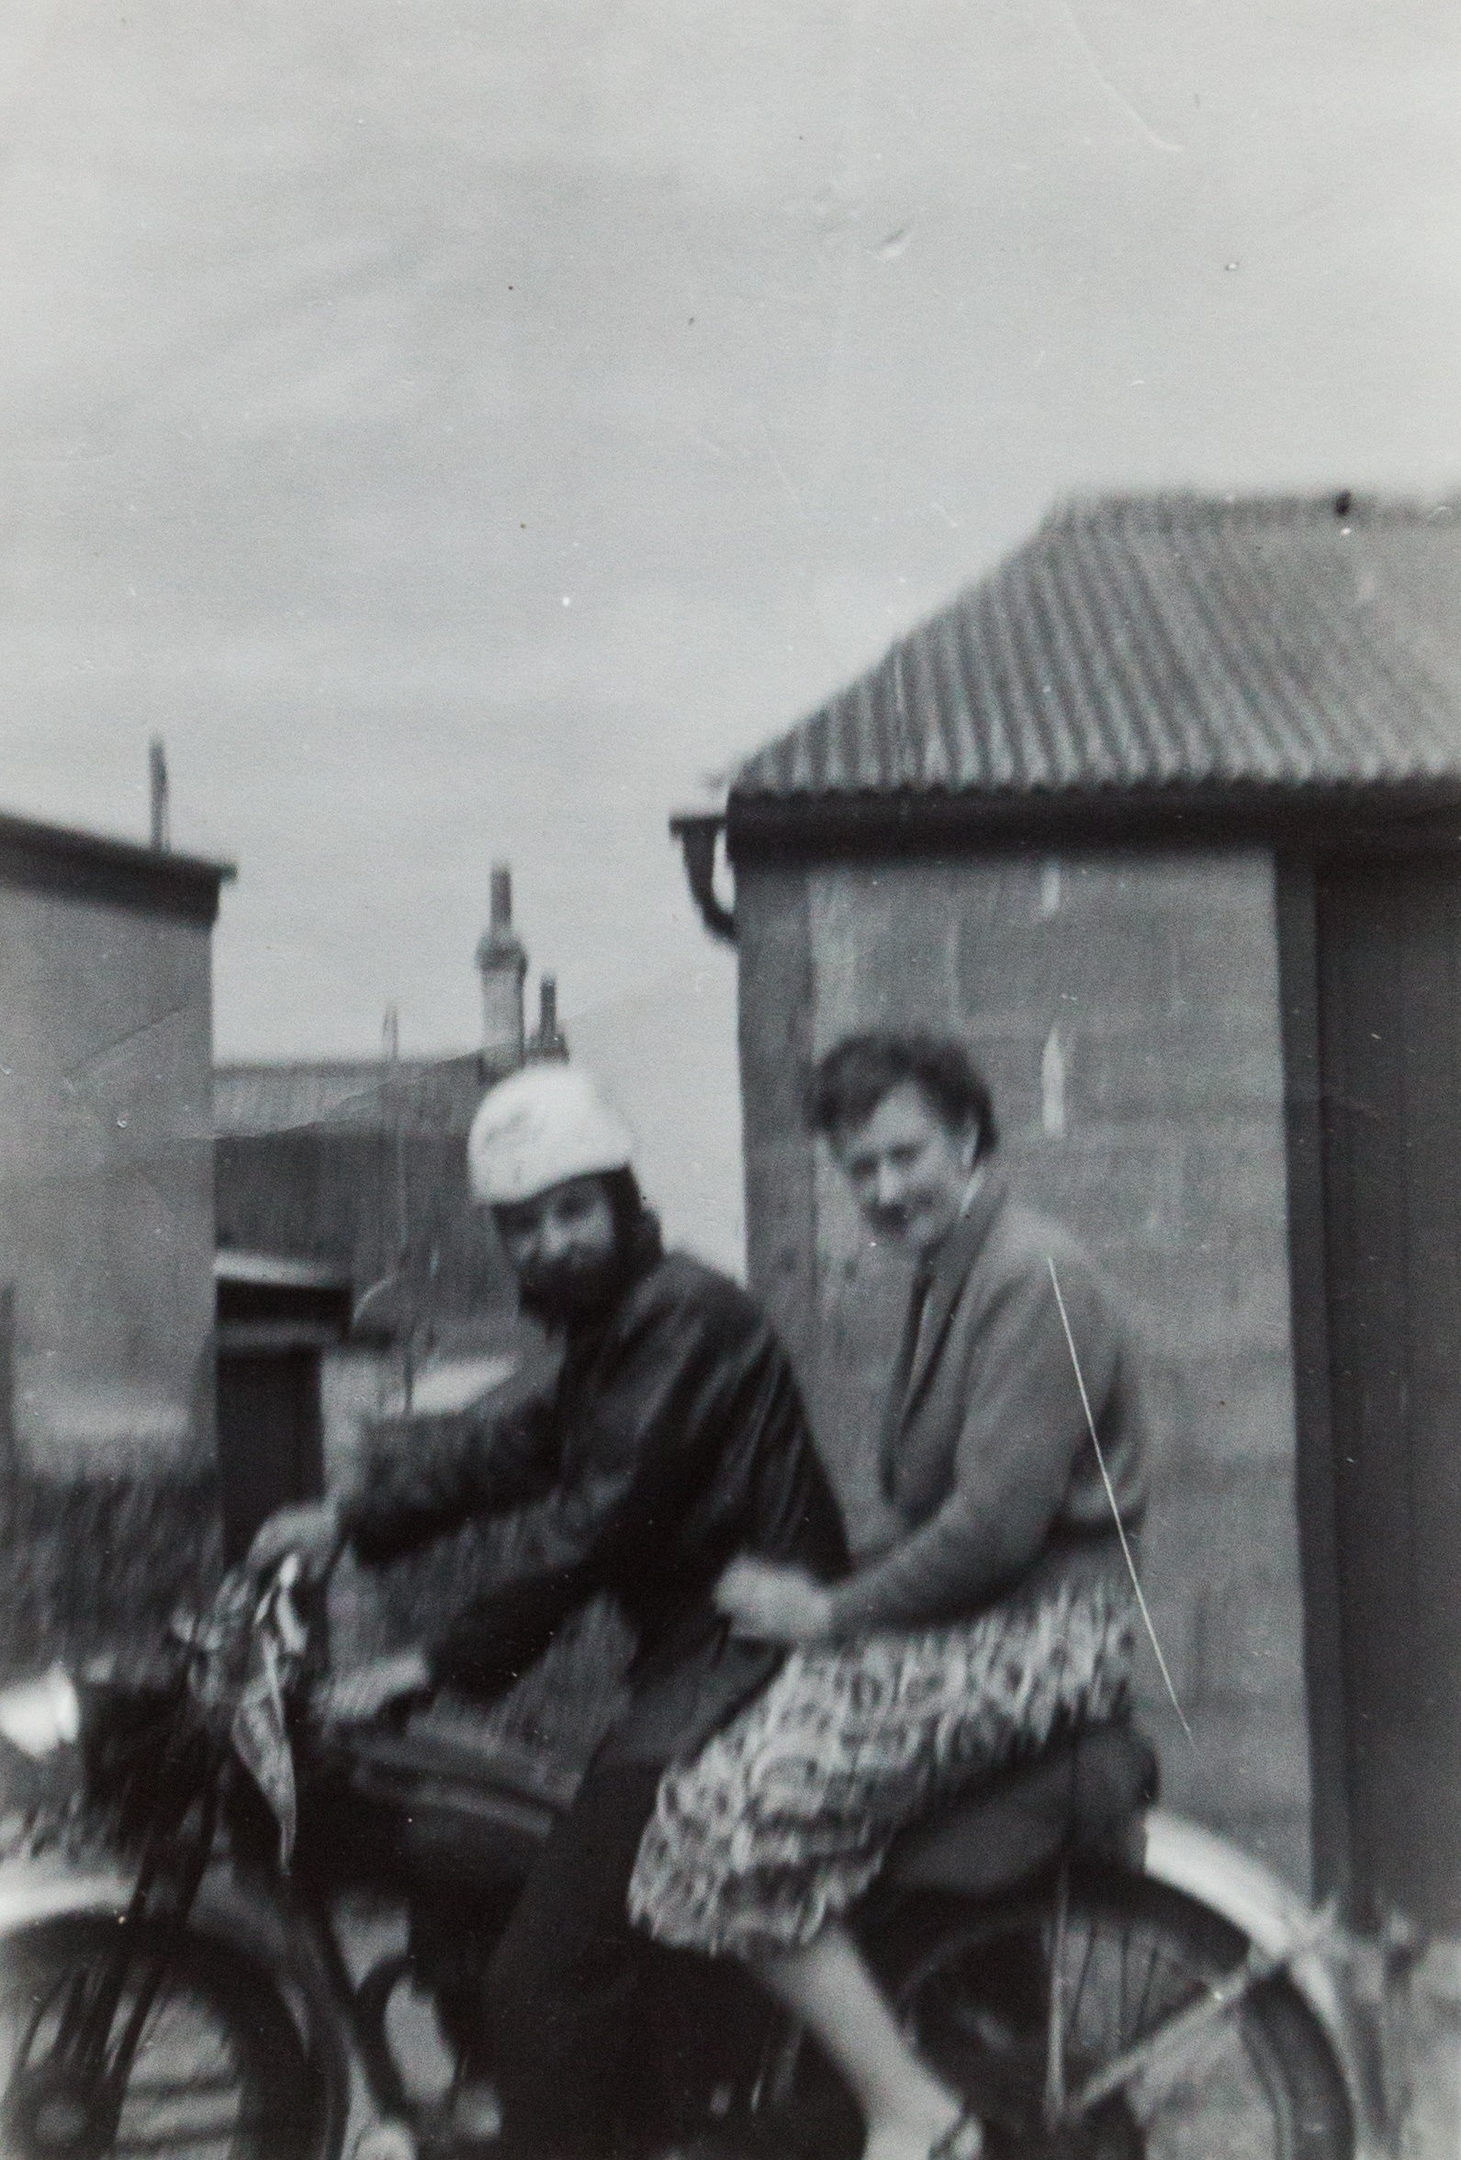 Bob and Jean Smith sitting on their motorbike in 1957